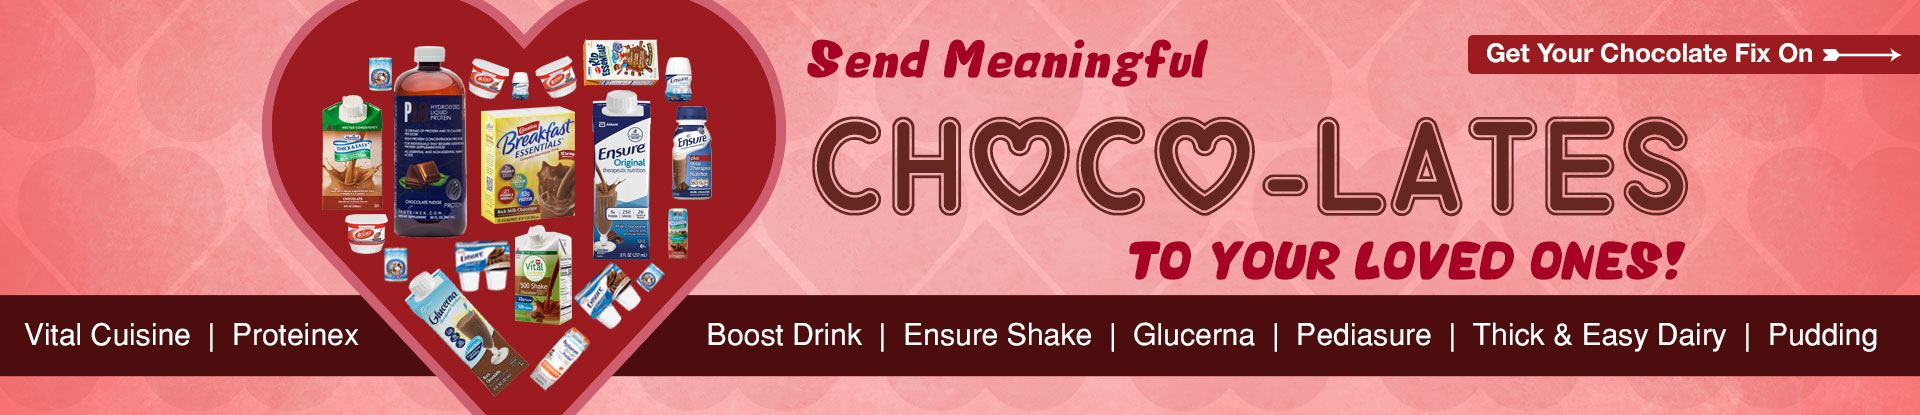 Shop Chocolates for Valentine's Day